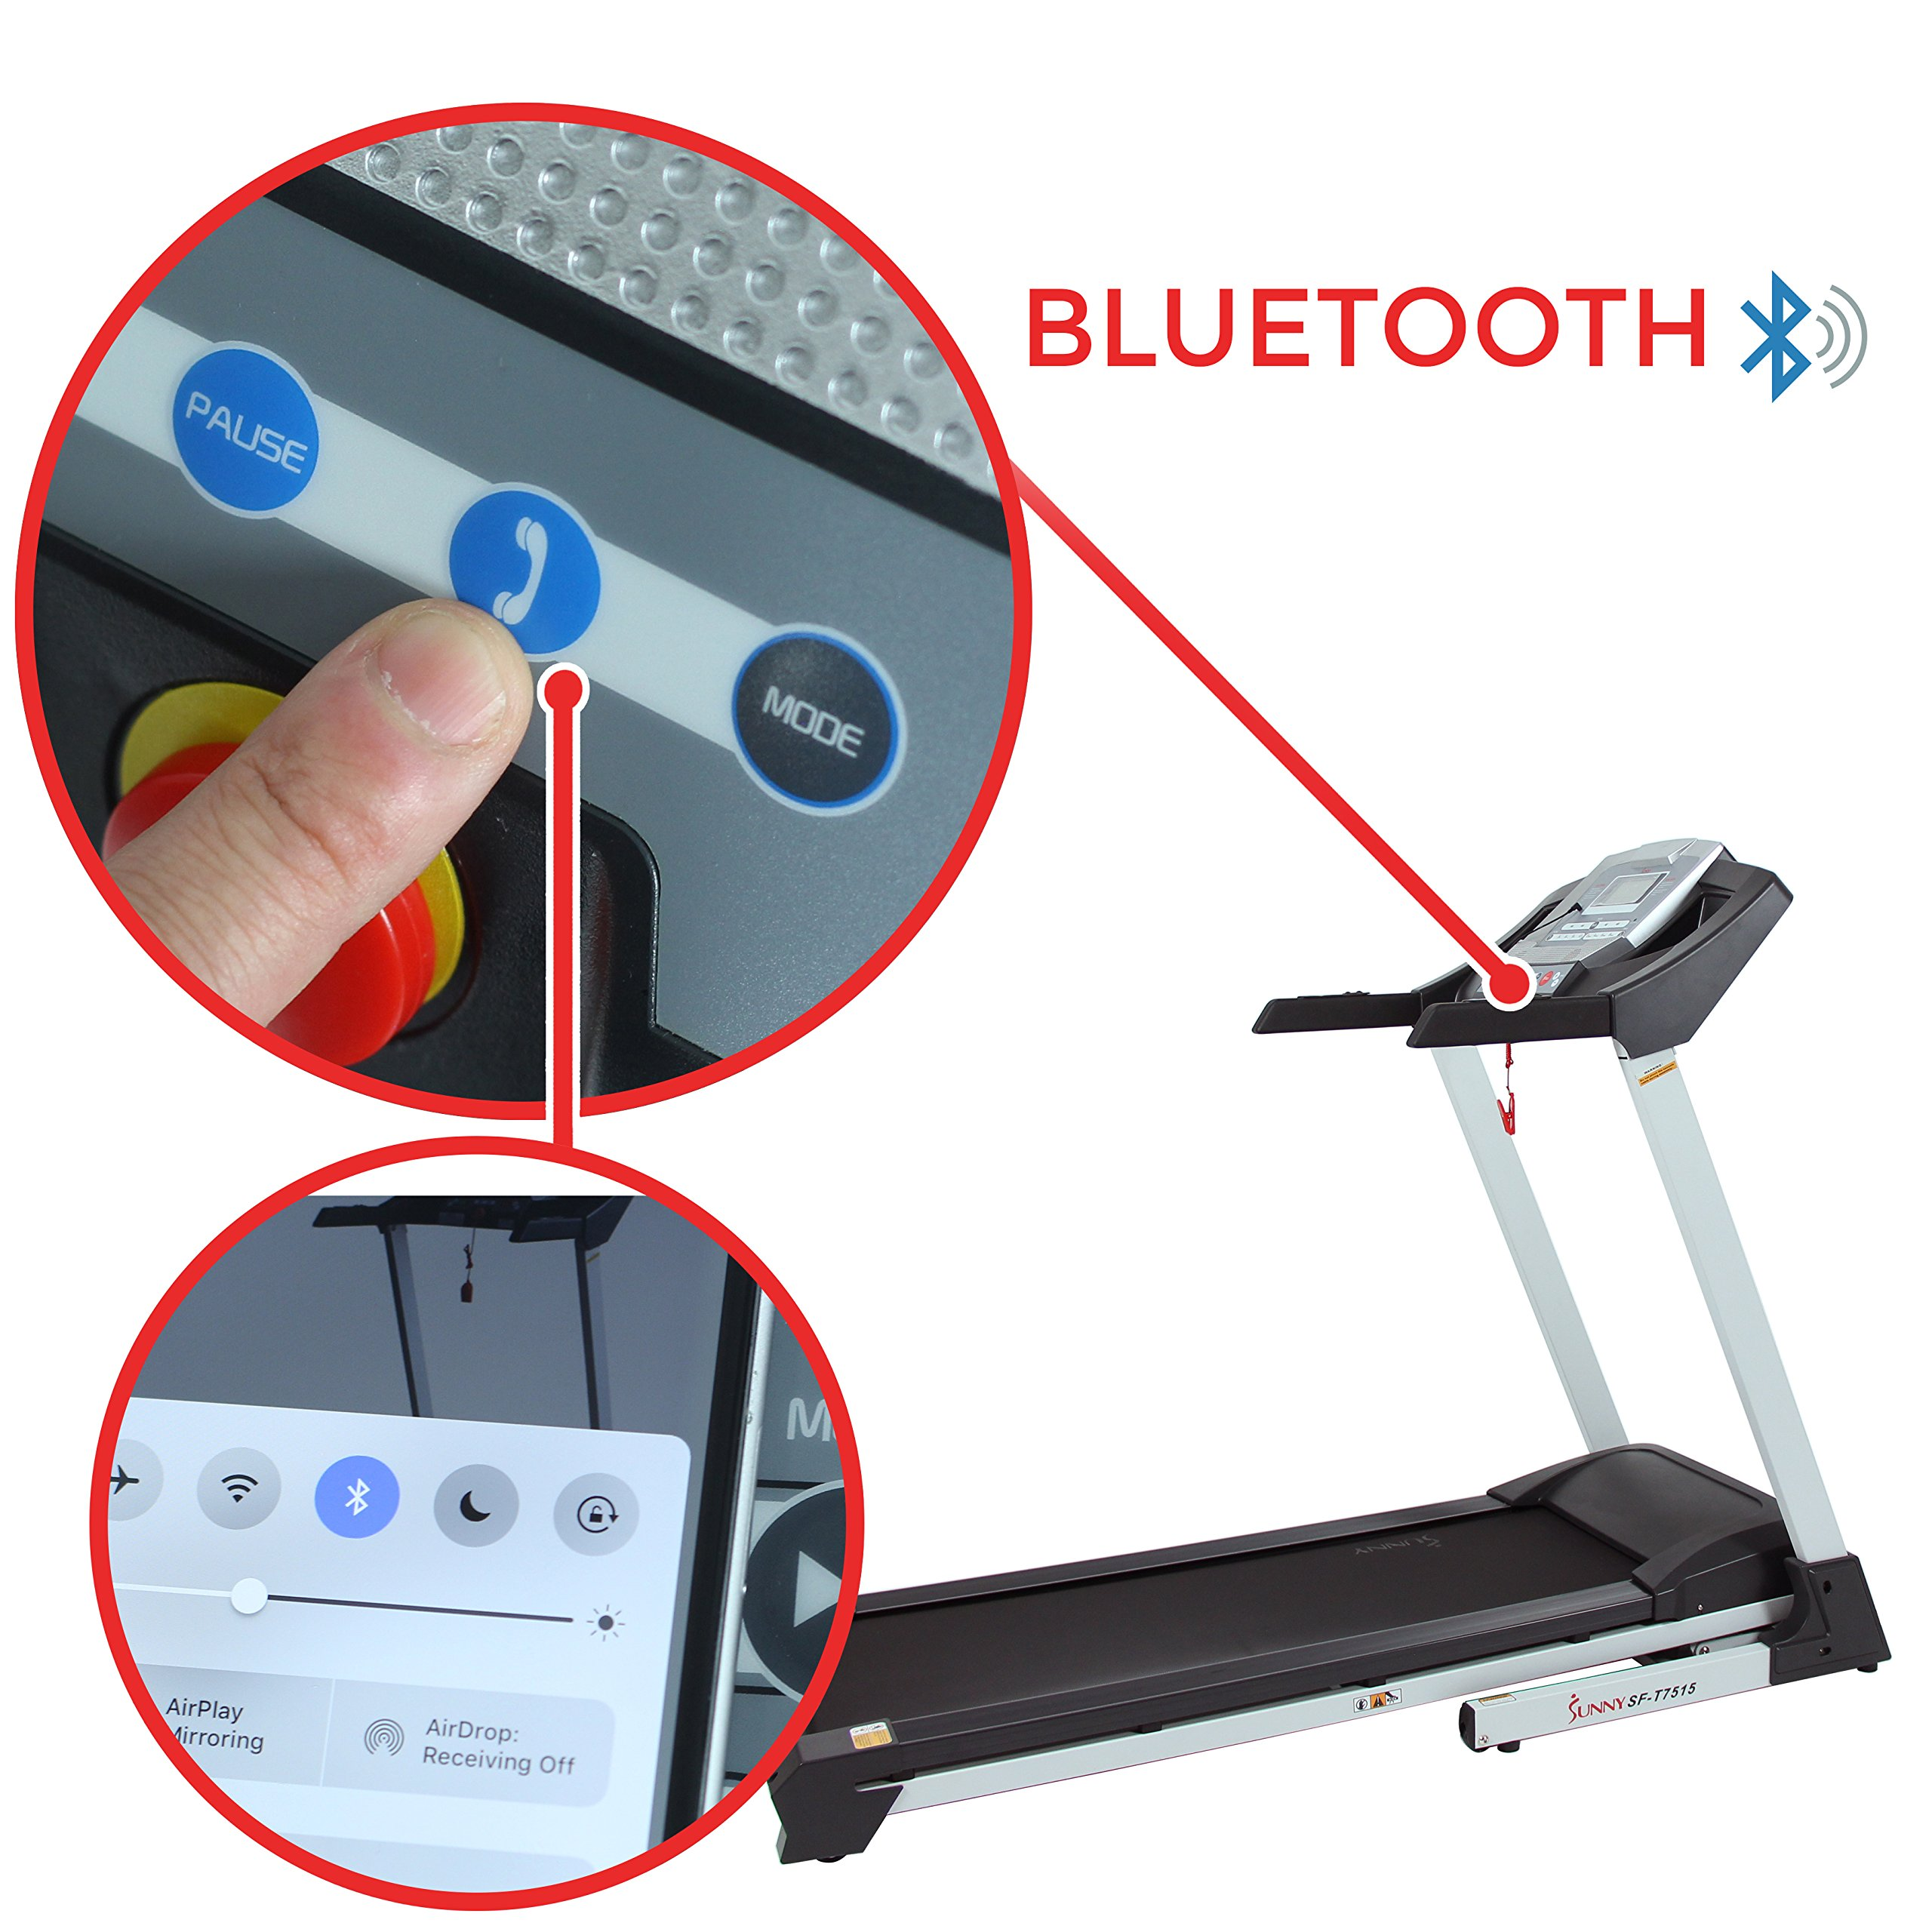 Sunny Health & Fitness SF-T7515 Smart Treadmill with Auto Incline, Bluetooth and BMI Calculator by Sunny Health & Fitness (Image #4)